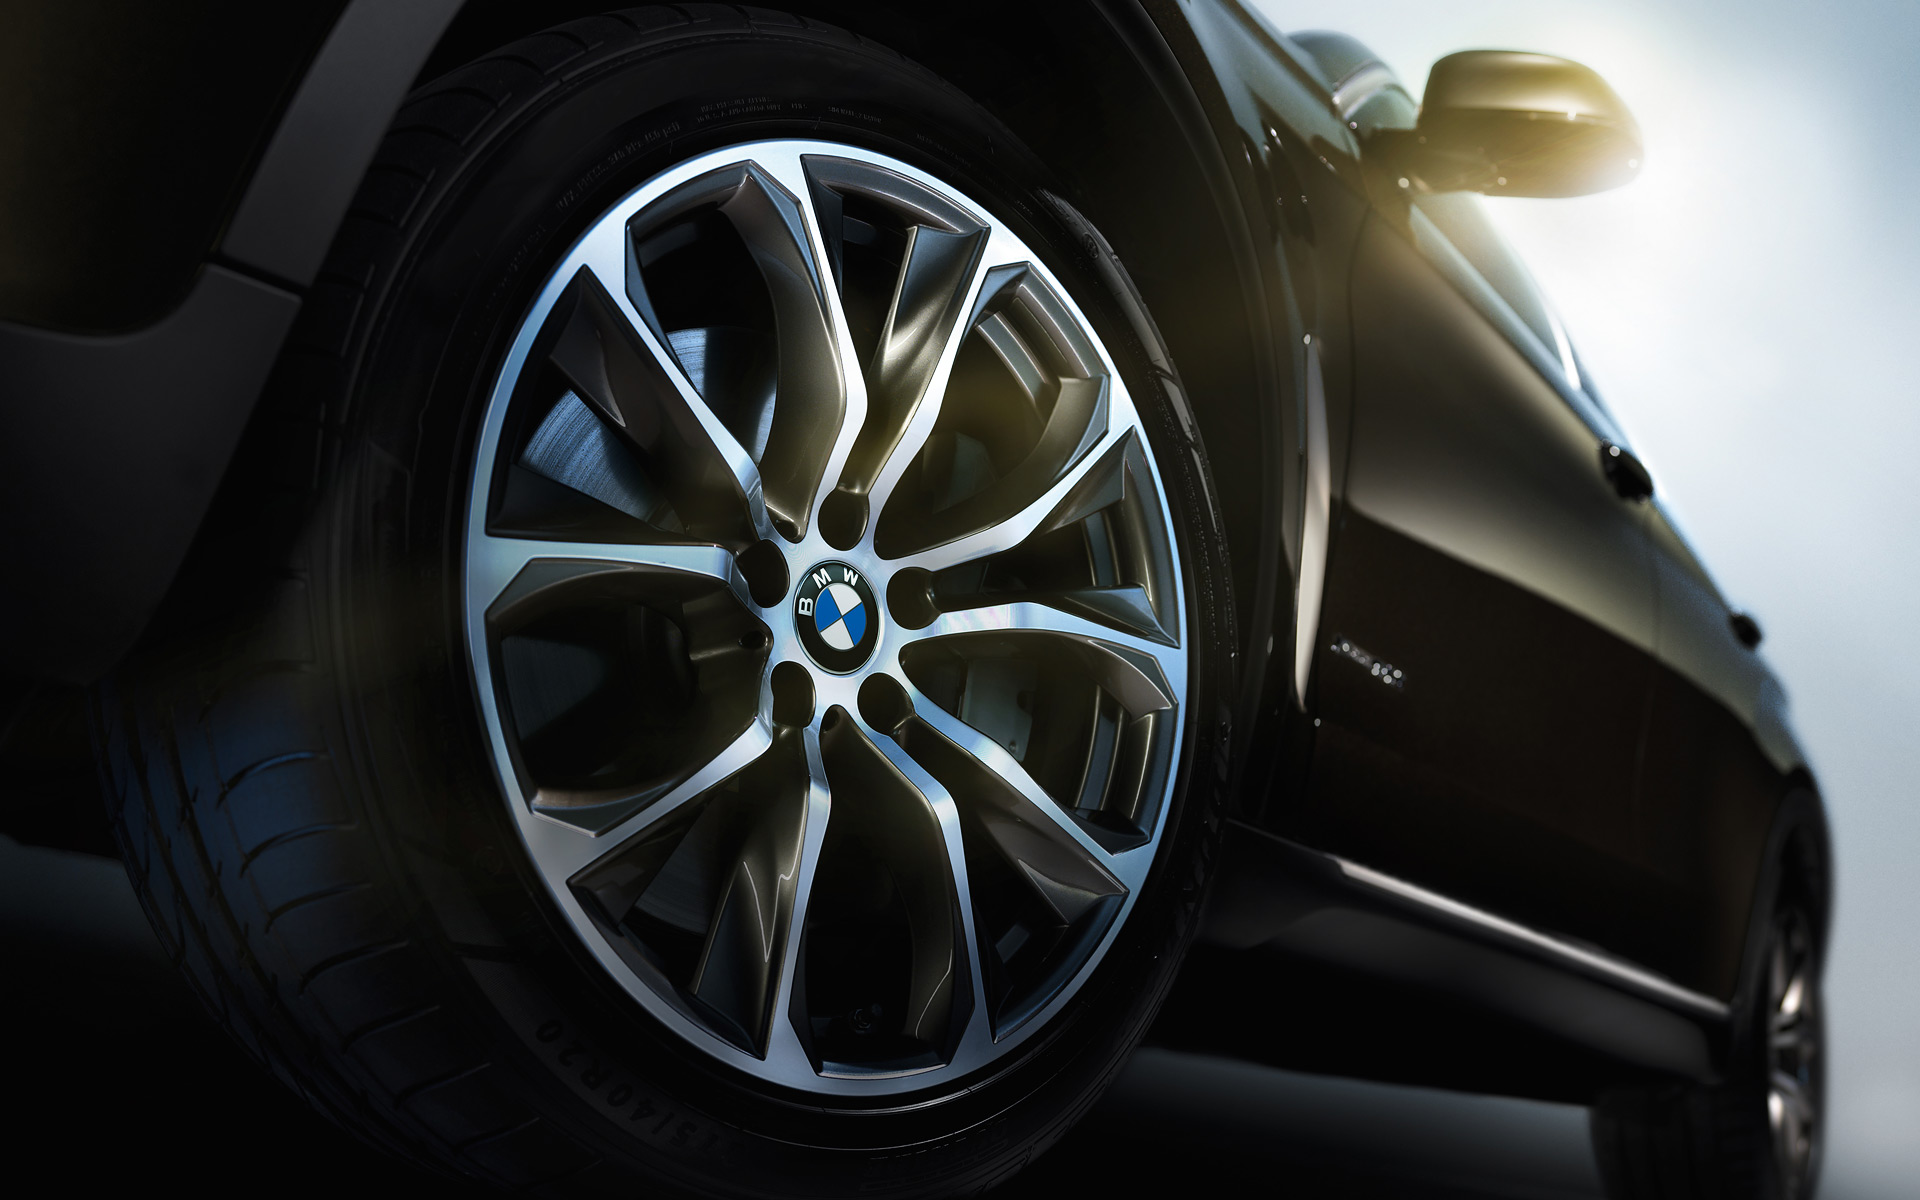 BMW-X6-cartec-group-7.jpg